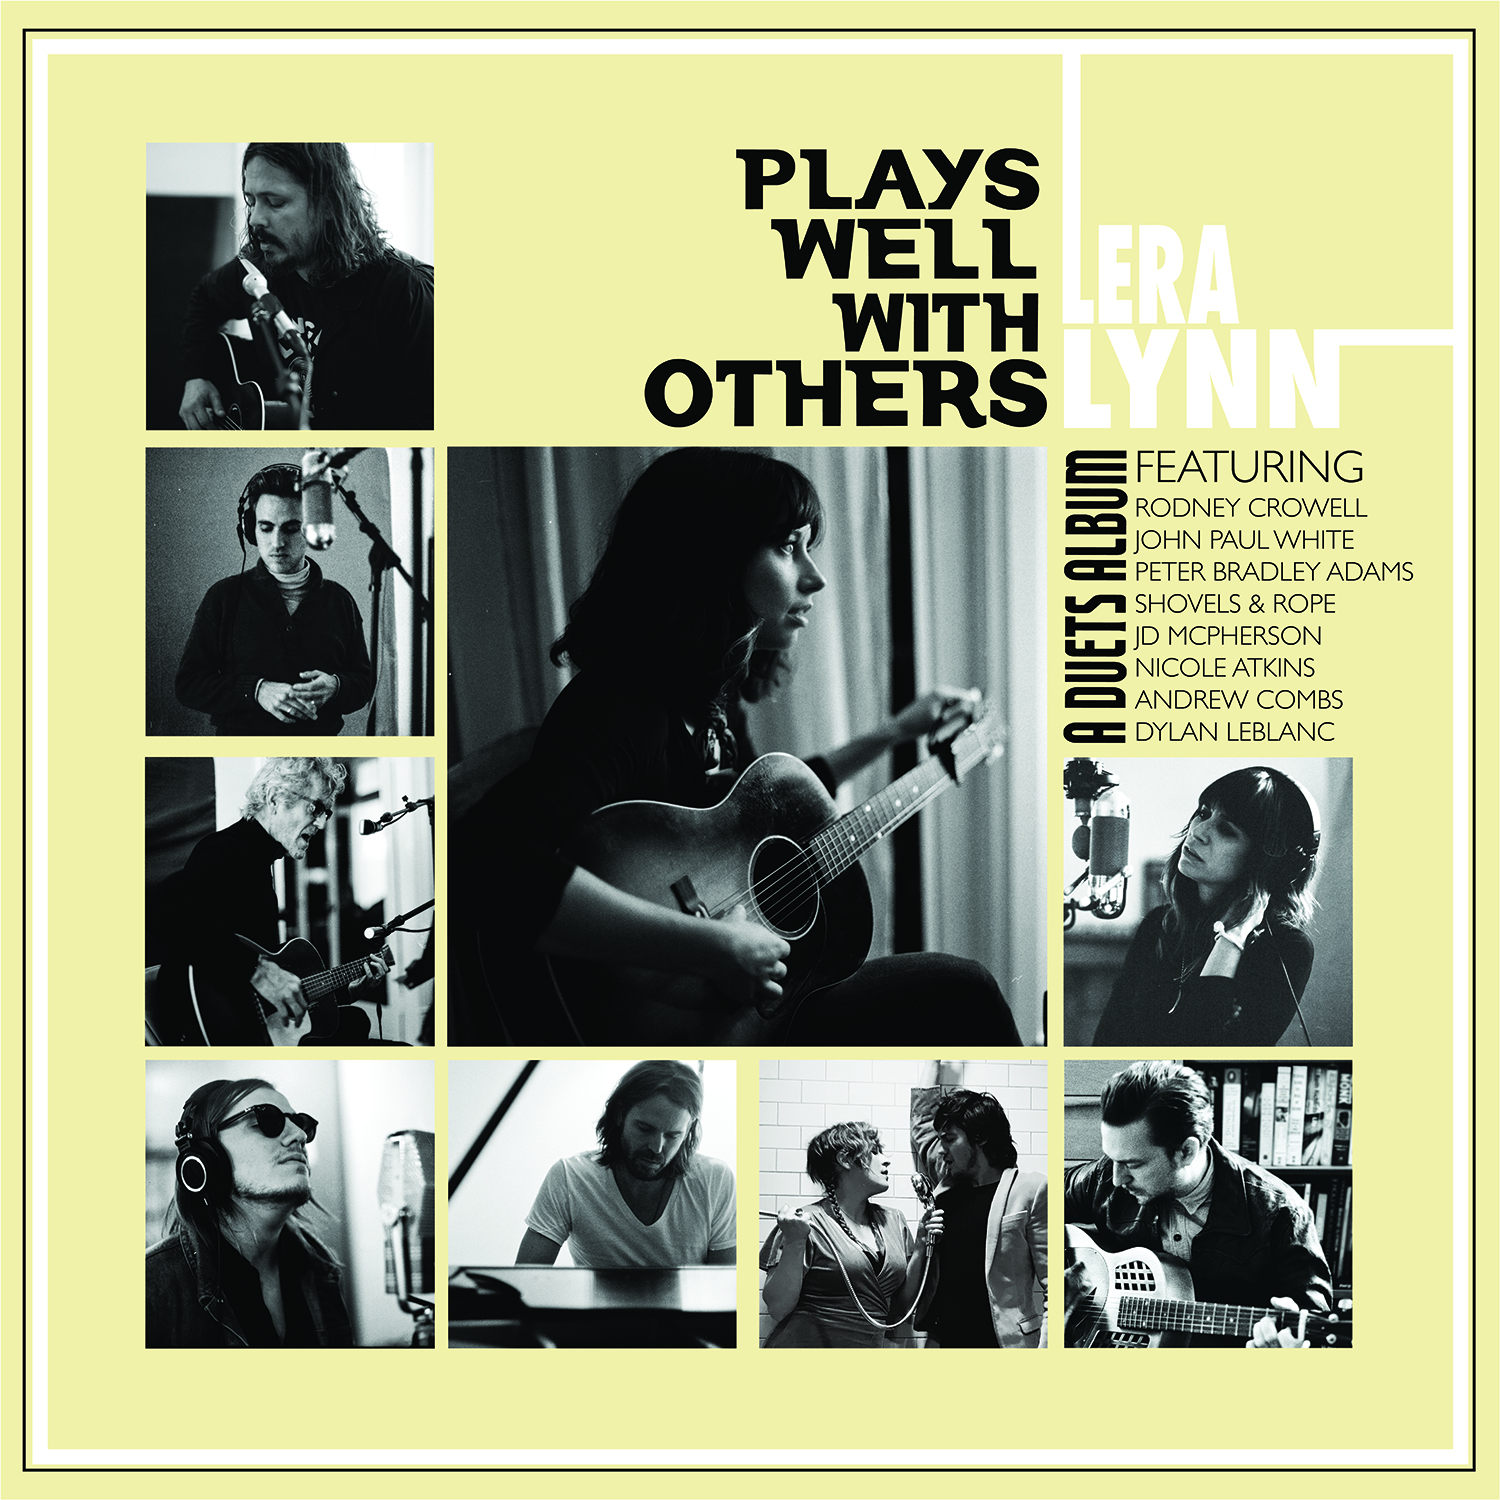 """We're excited to announce a new project from  Lera Lynn . It's called """"Plays Well With Others"""", and it's a duets record featuring  John Paul White , Dylan LeBlanc , Nicole Atkins , Shovels and Rope , Peter Bradley Adams , Rodney Crowell (Official) , JD McPherson and  Andrew Combs .  """"Plays Well With Others"""" will release on CD and digital platforms on June 22, and a vinyl LP release will follow on July 27th.  Pre-order yours today: smarturl.it/LeraLynnPWWO"""